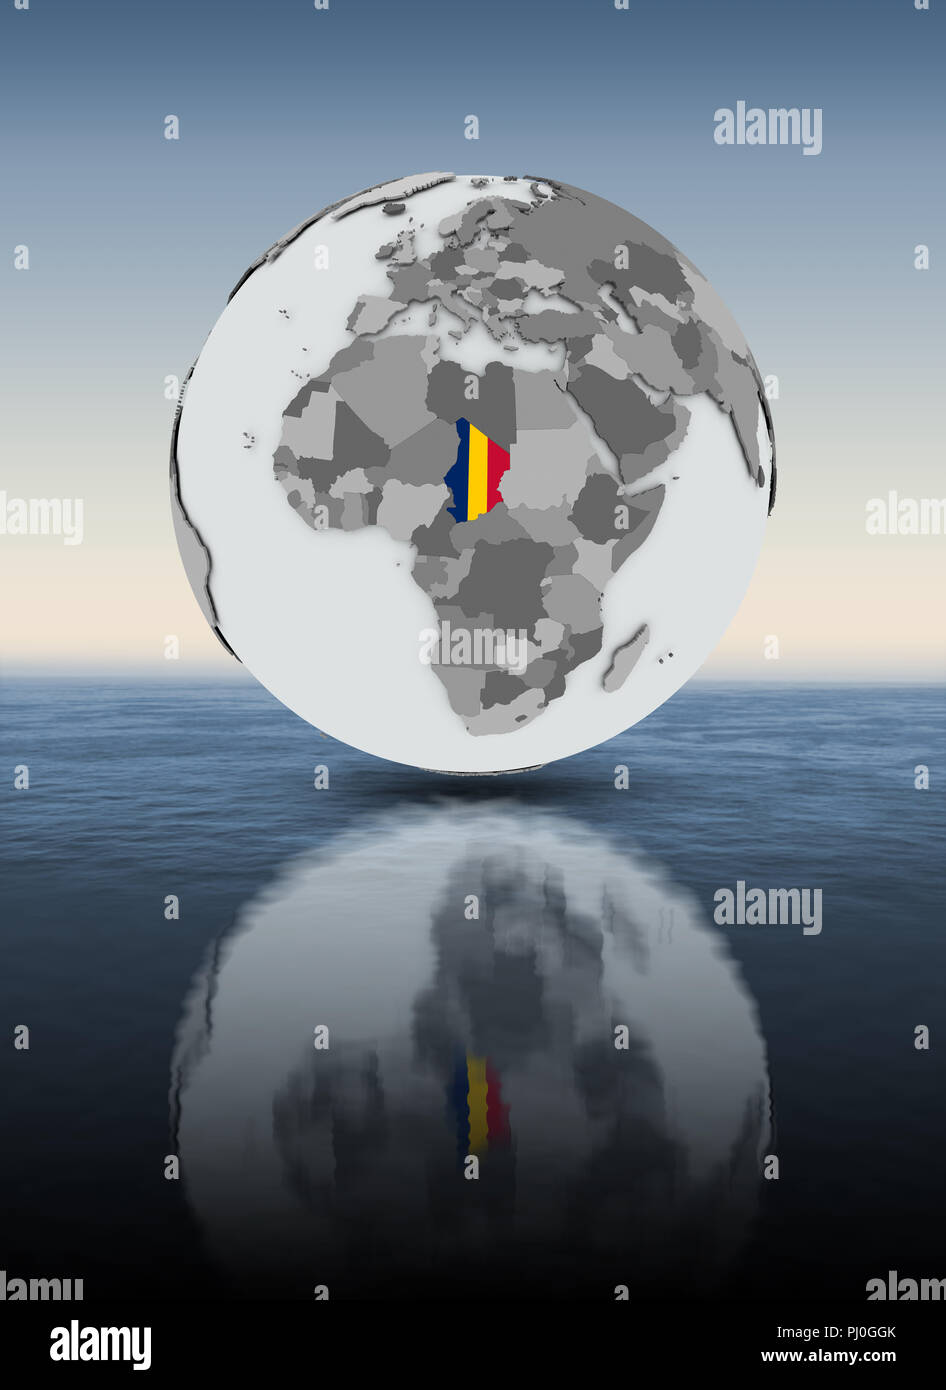 Chad with flag on globe above water. 3D illustration. - Stock Image